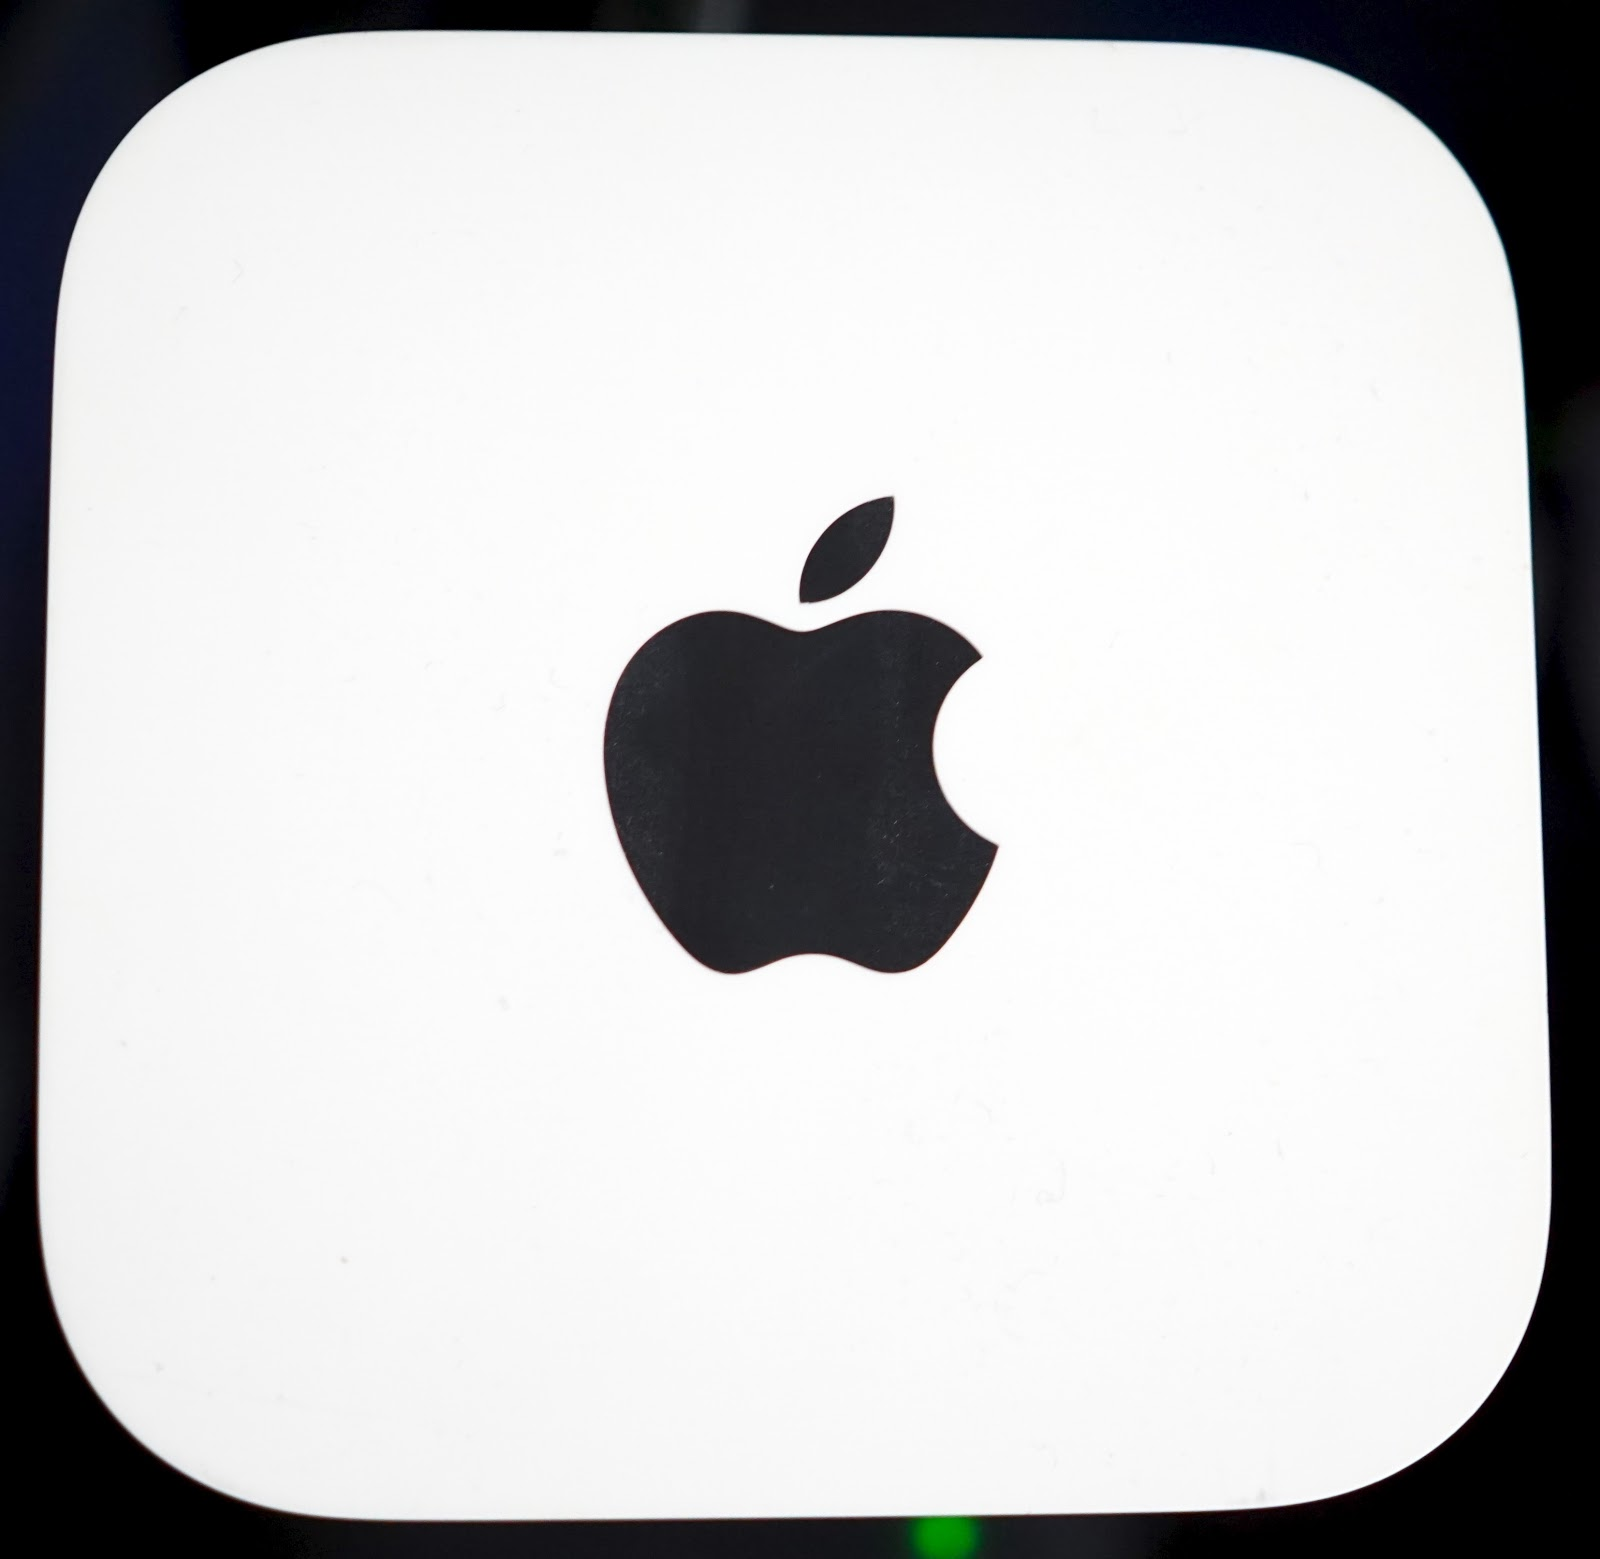 Connecting a Hard Drive to my Apple Airport Extreme via USB